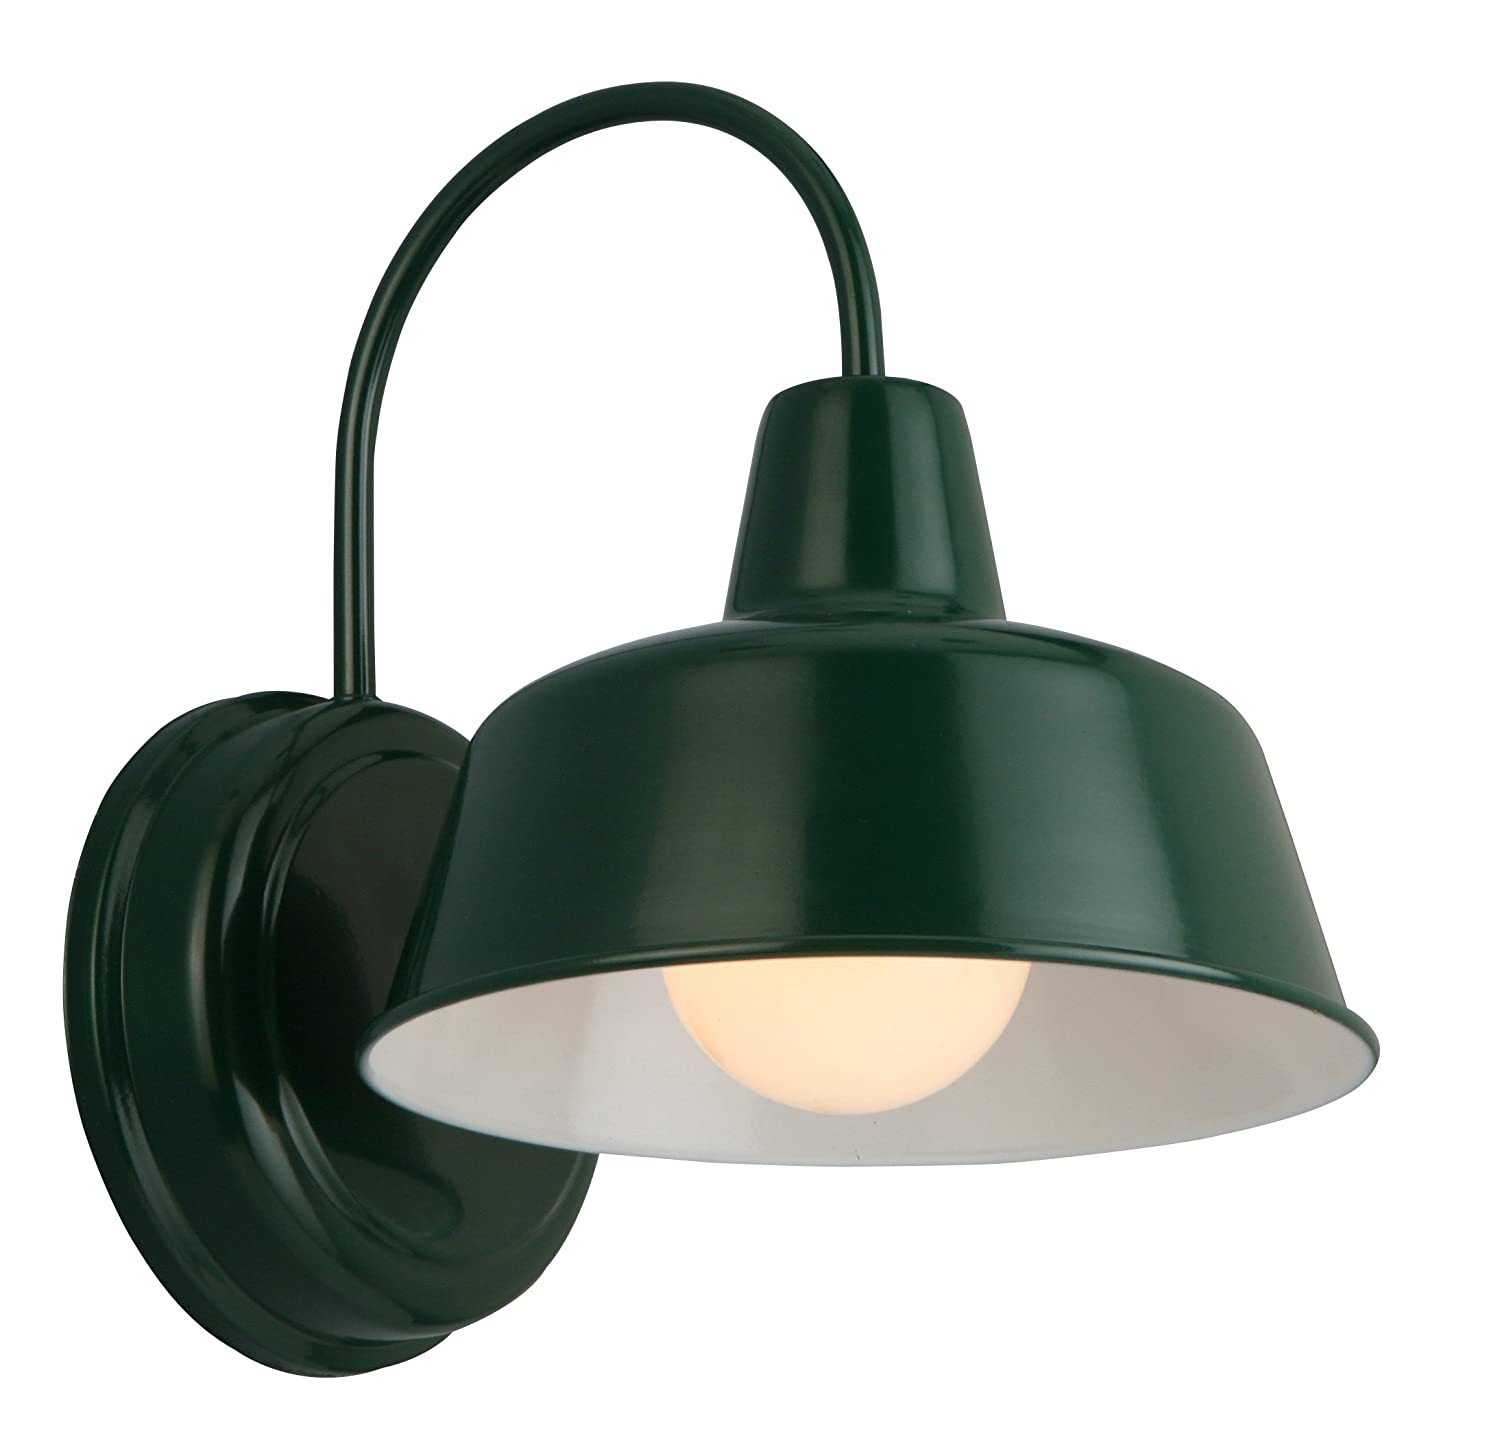 Design House 579342 Mason 1 Indoor/Outdoor Wall Light, Forest Green ...